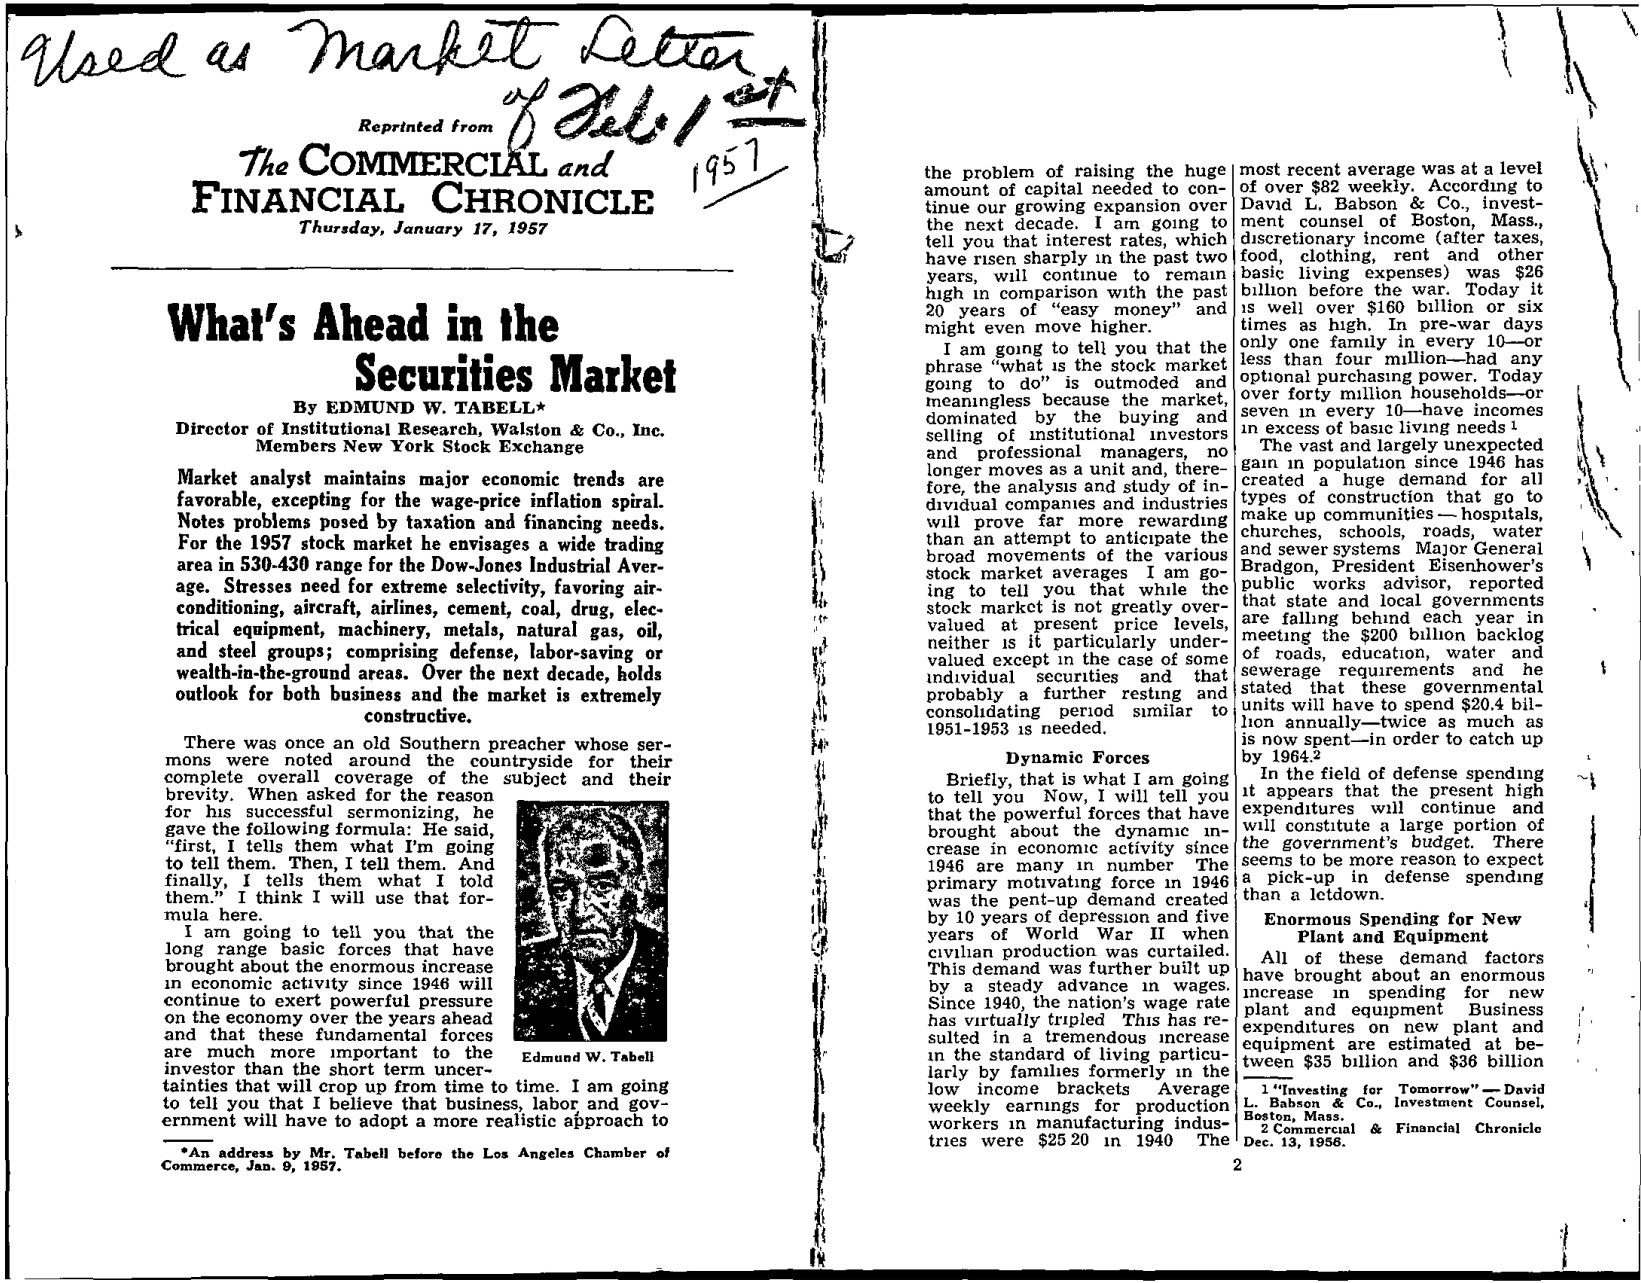 Tabell's Market Letter - February 01, 1957 page 1